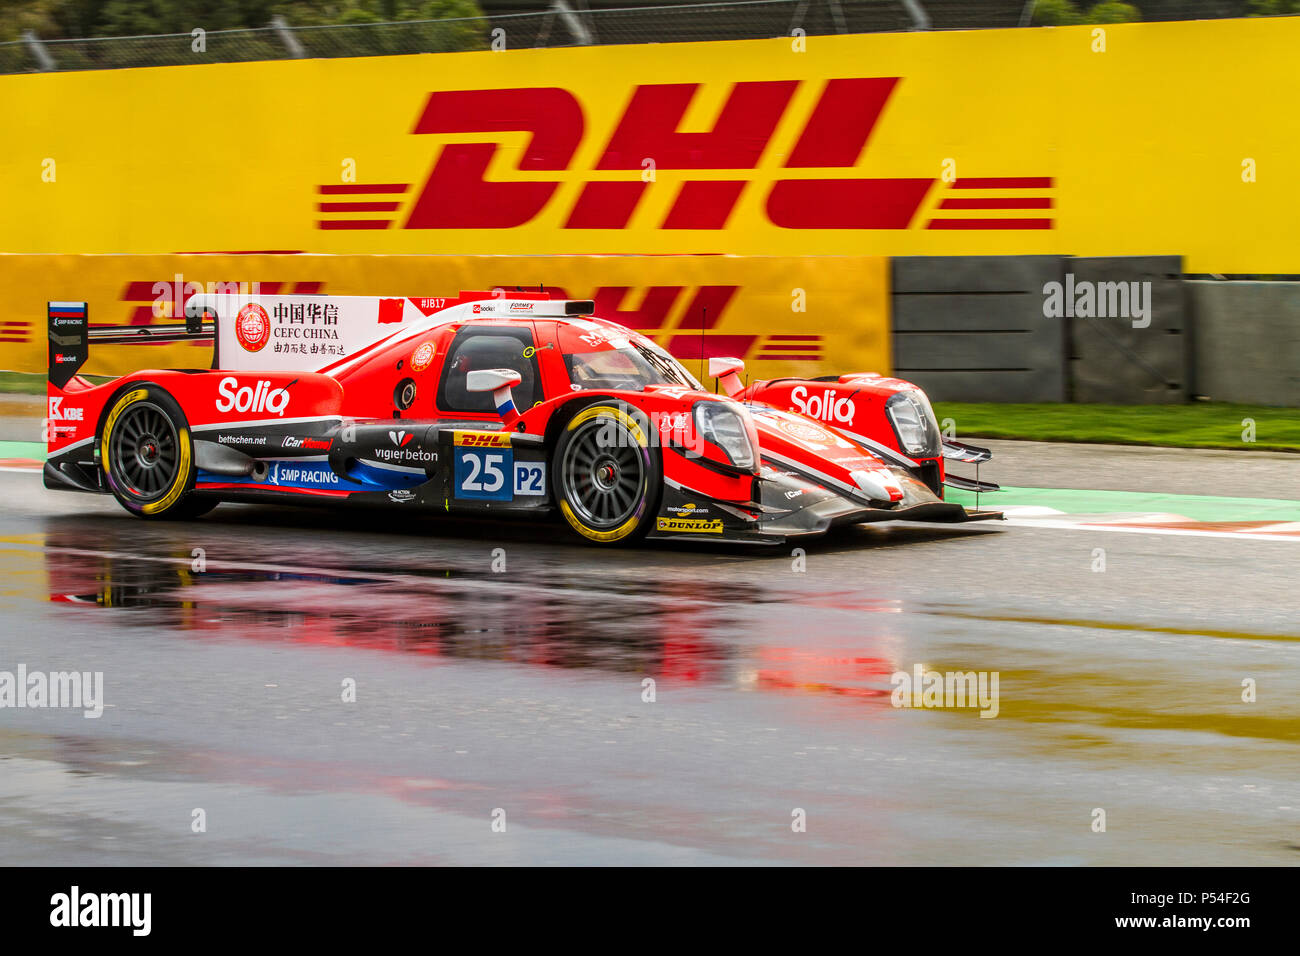 Mexico City, Mexico – September 01, 2017: Autodromo Hermanos Rodriguez. 6hrs of Mexico, FIA WEC. CEFC MANOR TRS RACING driver´s Roberto Gonzalez, Simon Trummer or Vitaly Petrov, at the Oreca 07 Gibson No. 25, running at the Free Practice I. - Stock Image